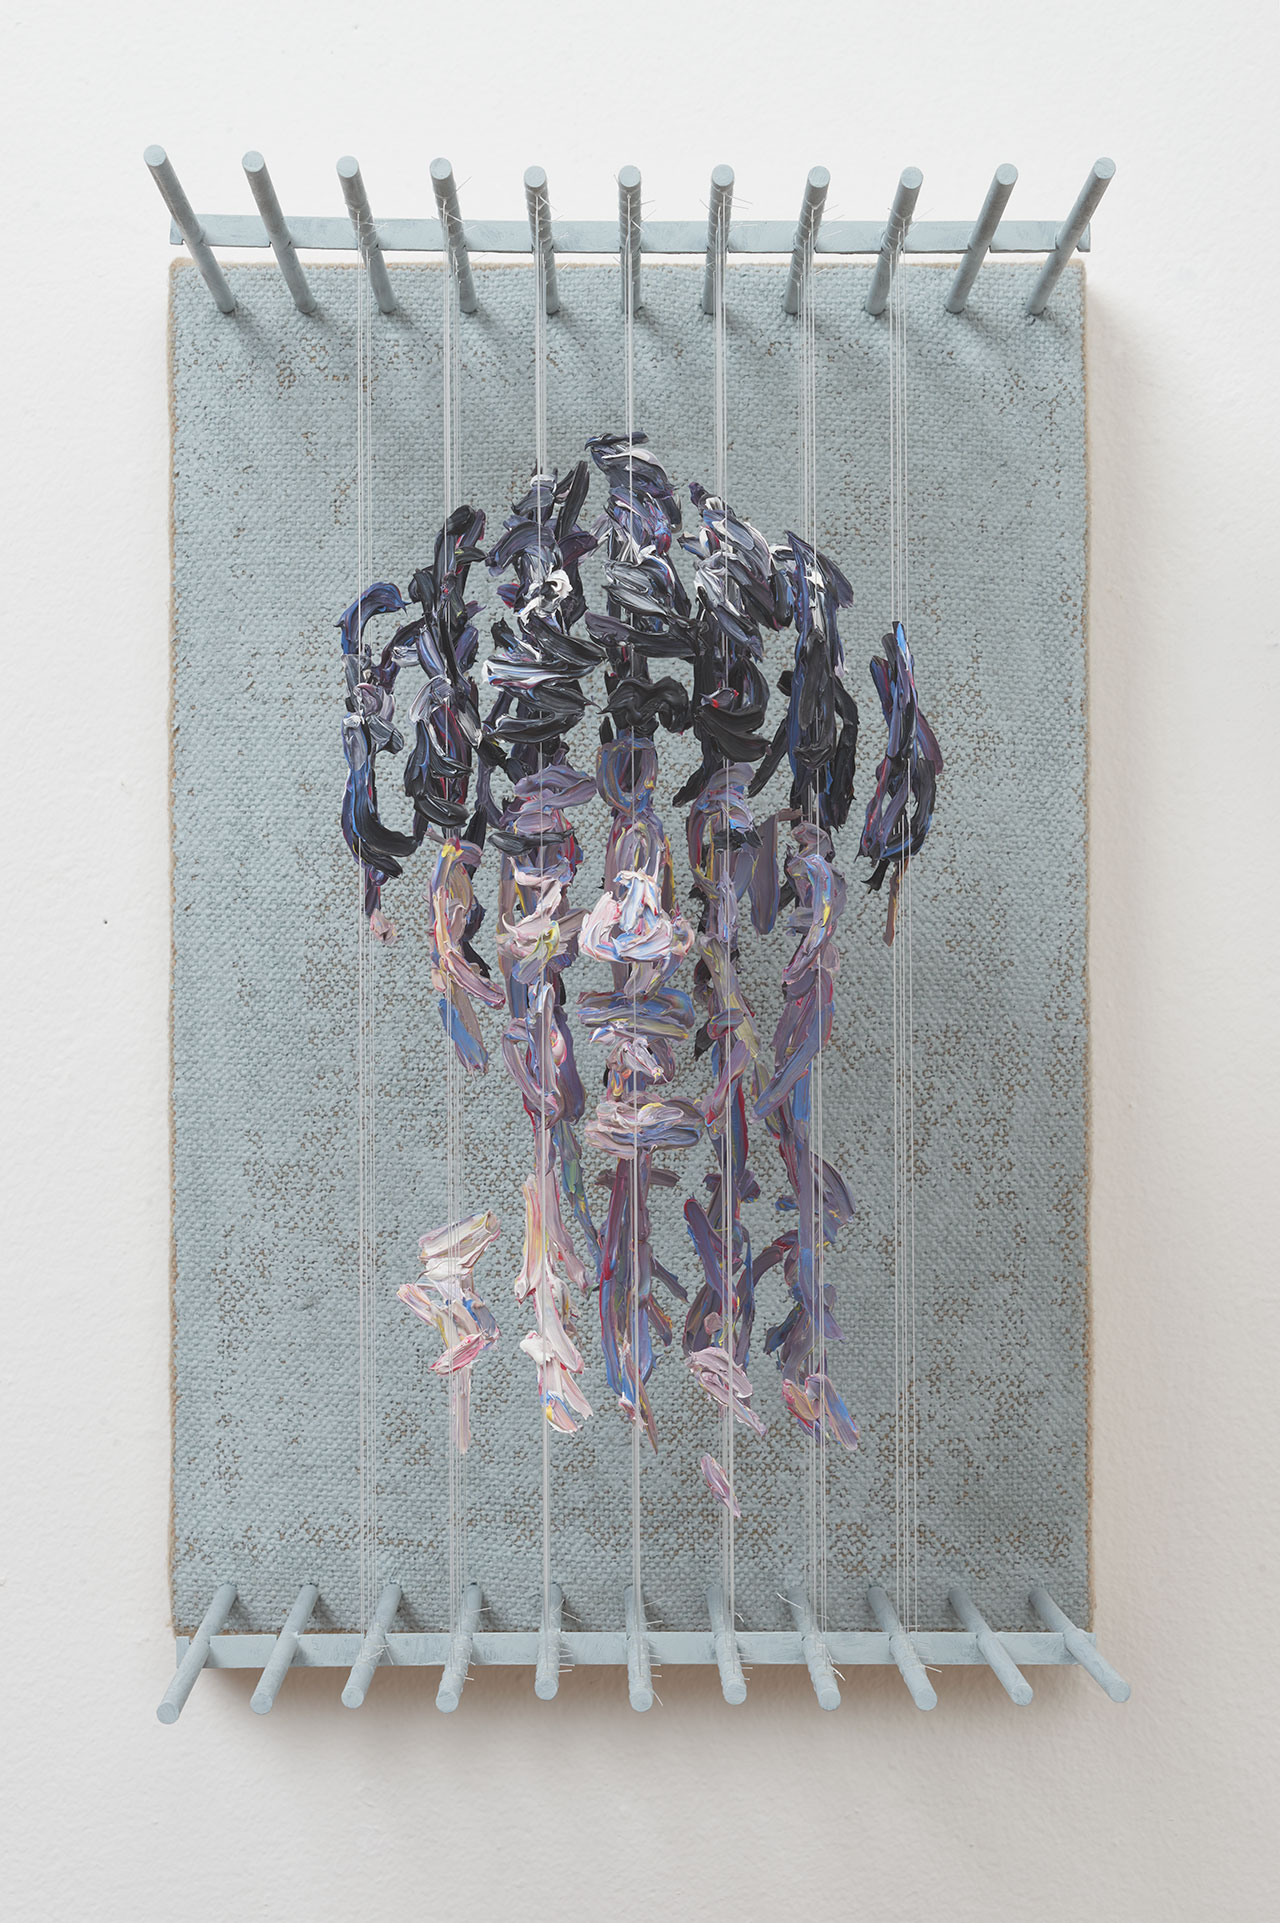 Chris Dorosz, h.o.r, 2017. Acrylic paint on monofilament, metal, jute on board,14 H x 9.25 W x 11D inches. Photo courtesy of Muriel Guépin and the artist.